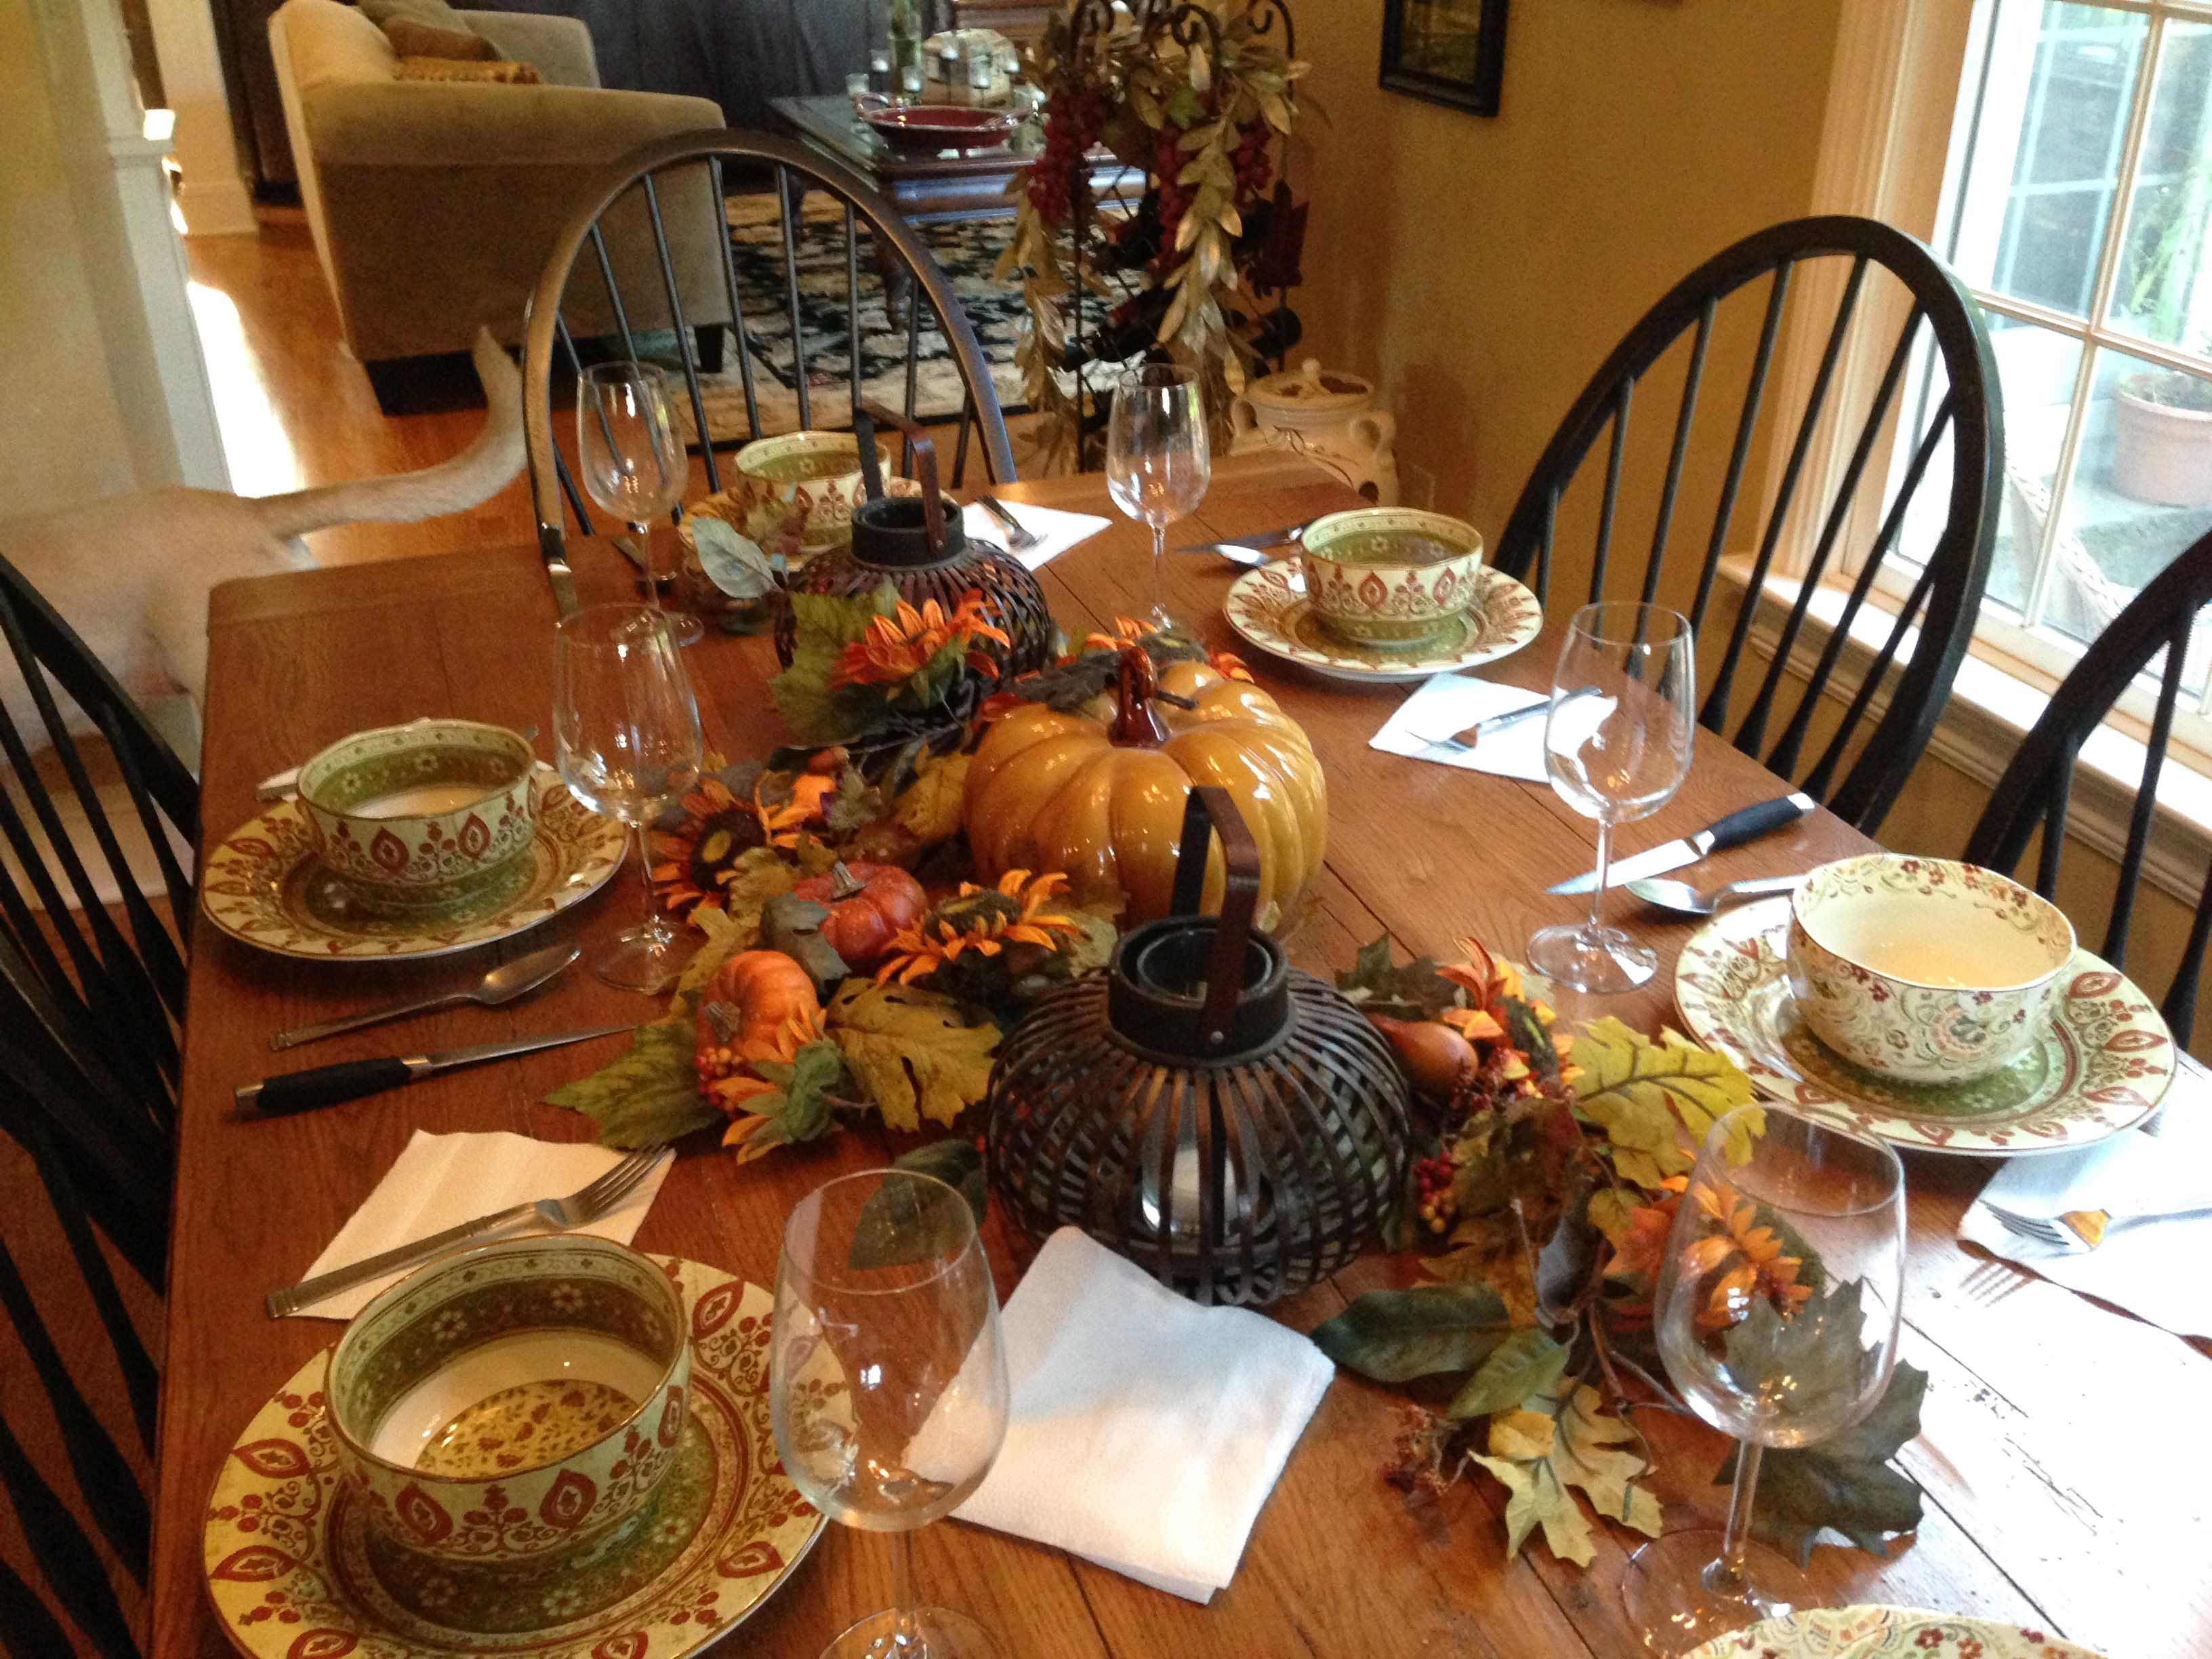 Autumn table decorating ideas fall table settings thanksgiving beautiful cozy fall decorating ideas that you can do it yourself to add warmth and excitement to the house fits halloween and thanksgiving solutioingenieria Gallery